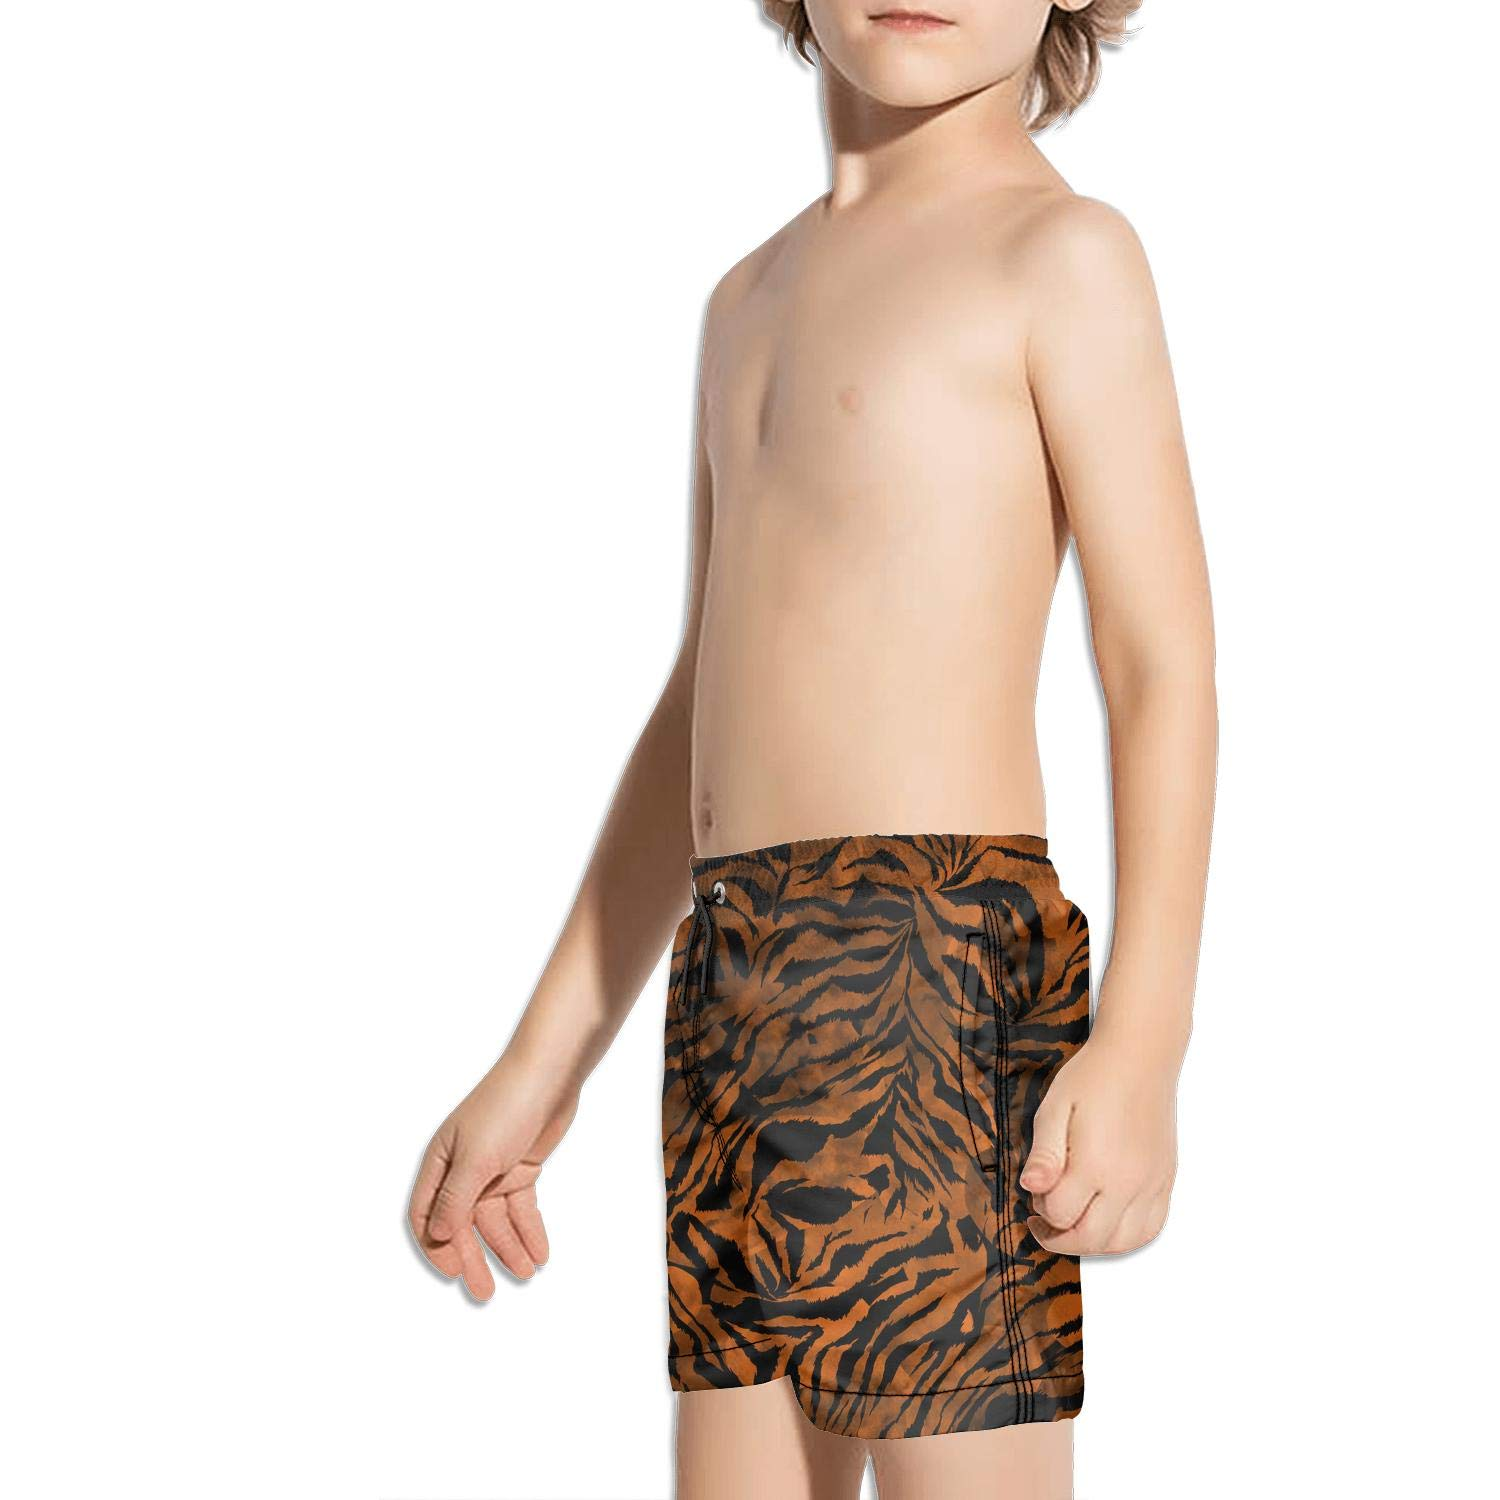 FullBo Animal Design Leopard Watercolor Camouflage Little Boys Short Swim Trunks Quick Dry Beach Shorts